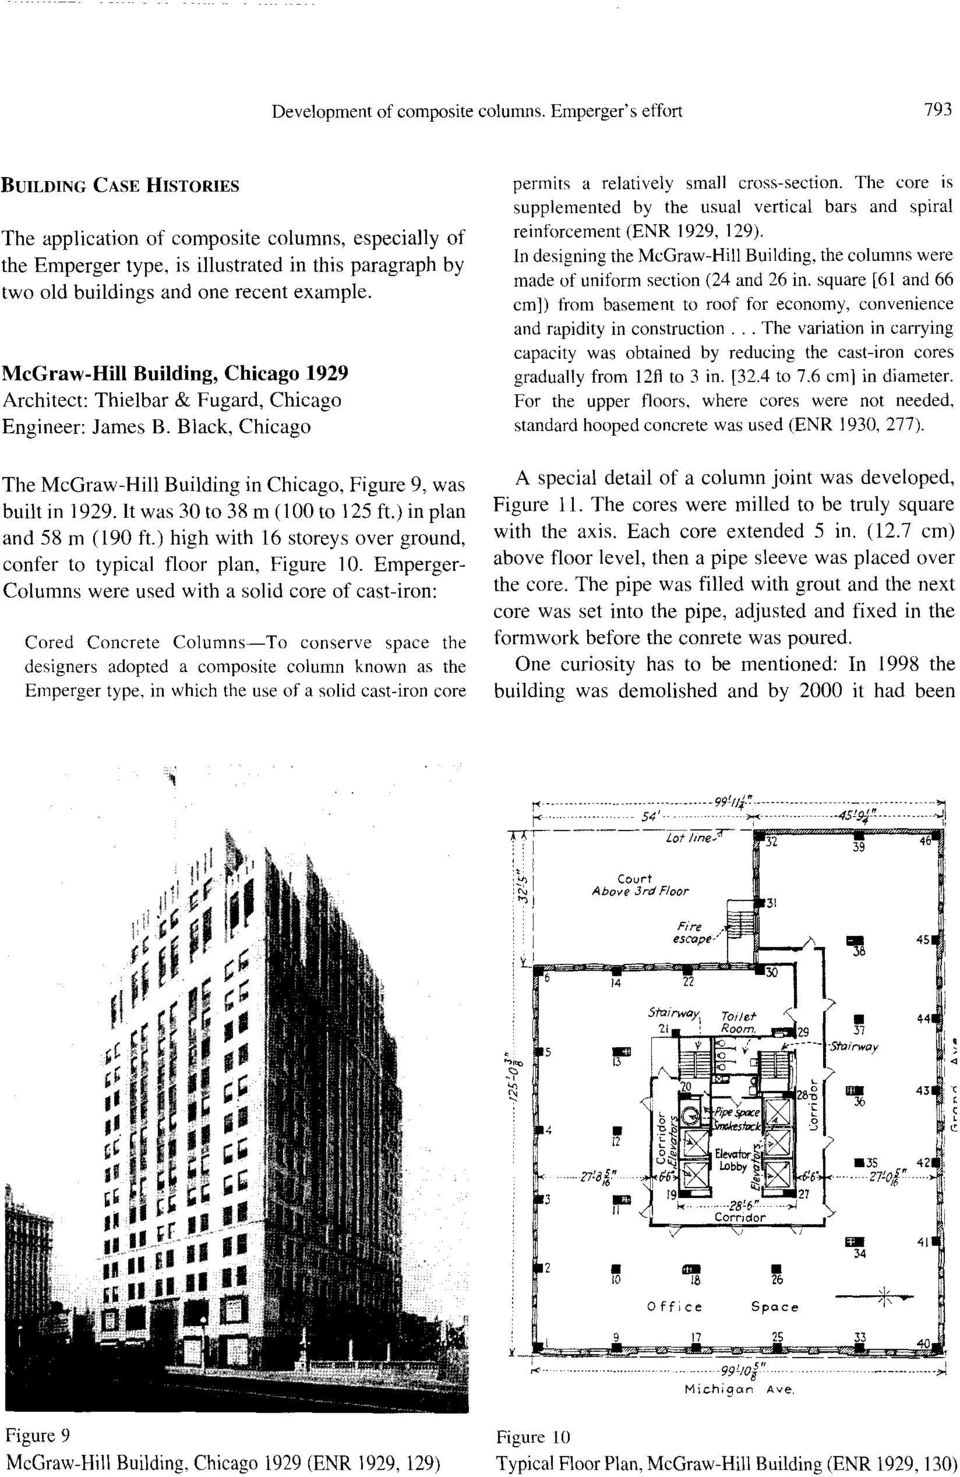 McGraw-Hill Building Chicago 1929 Architect: Thielbar & Fugard Chicago Engineer: James B. Black Chicago The McGraw-Hill Building in Chicago Figure 9 was builtin 1929.lt was 30to 38 m (looto \25 ft.